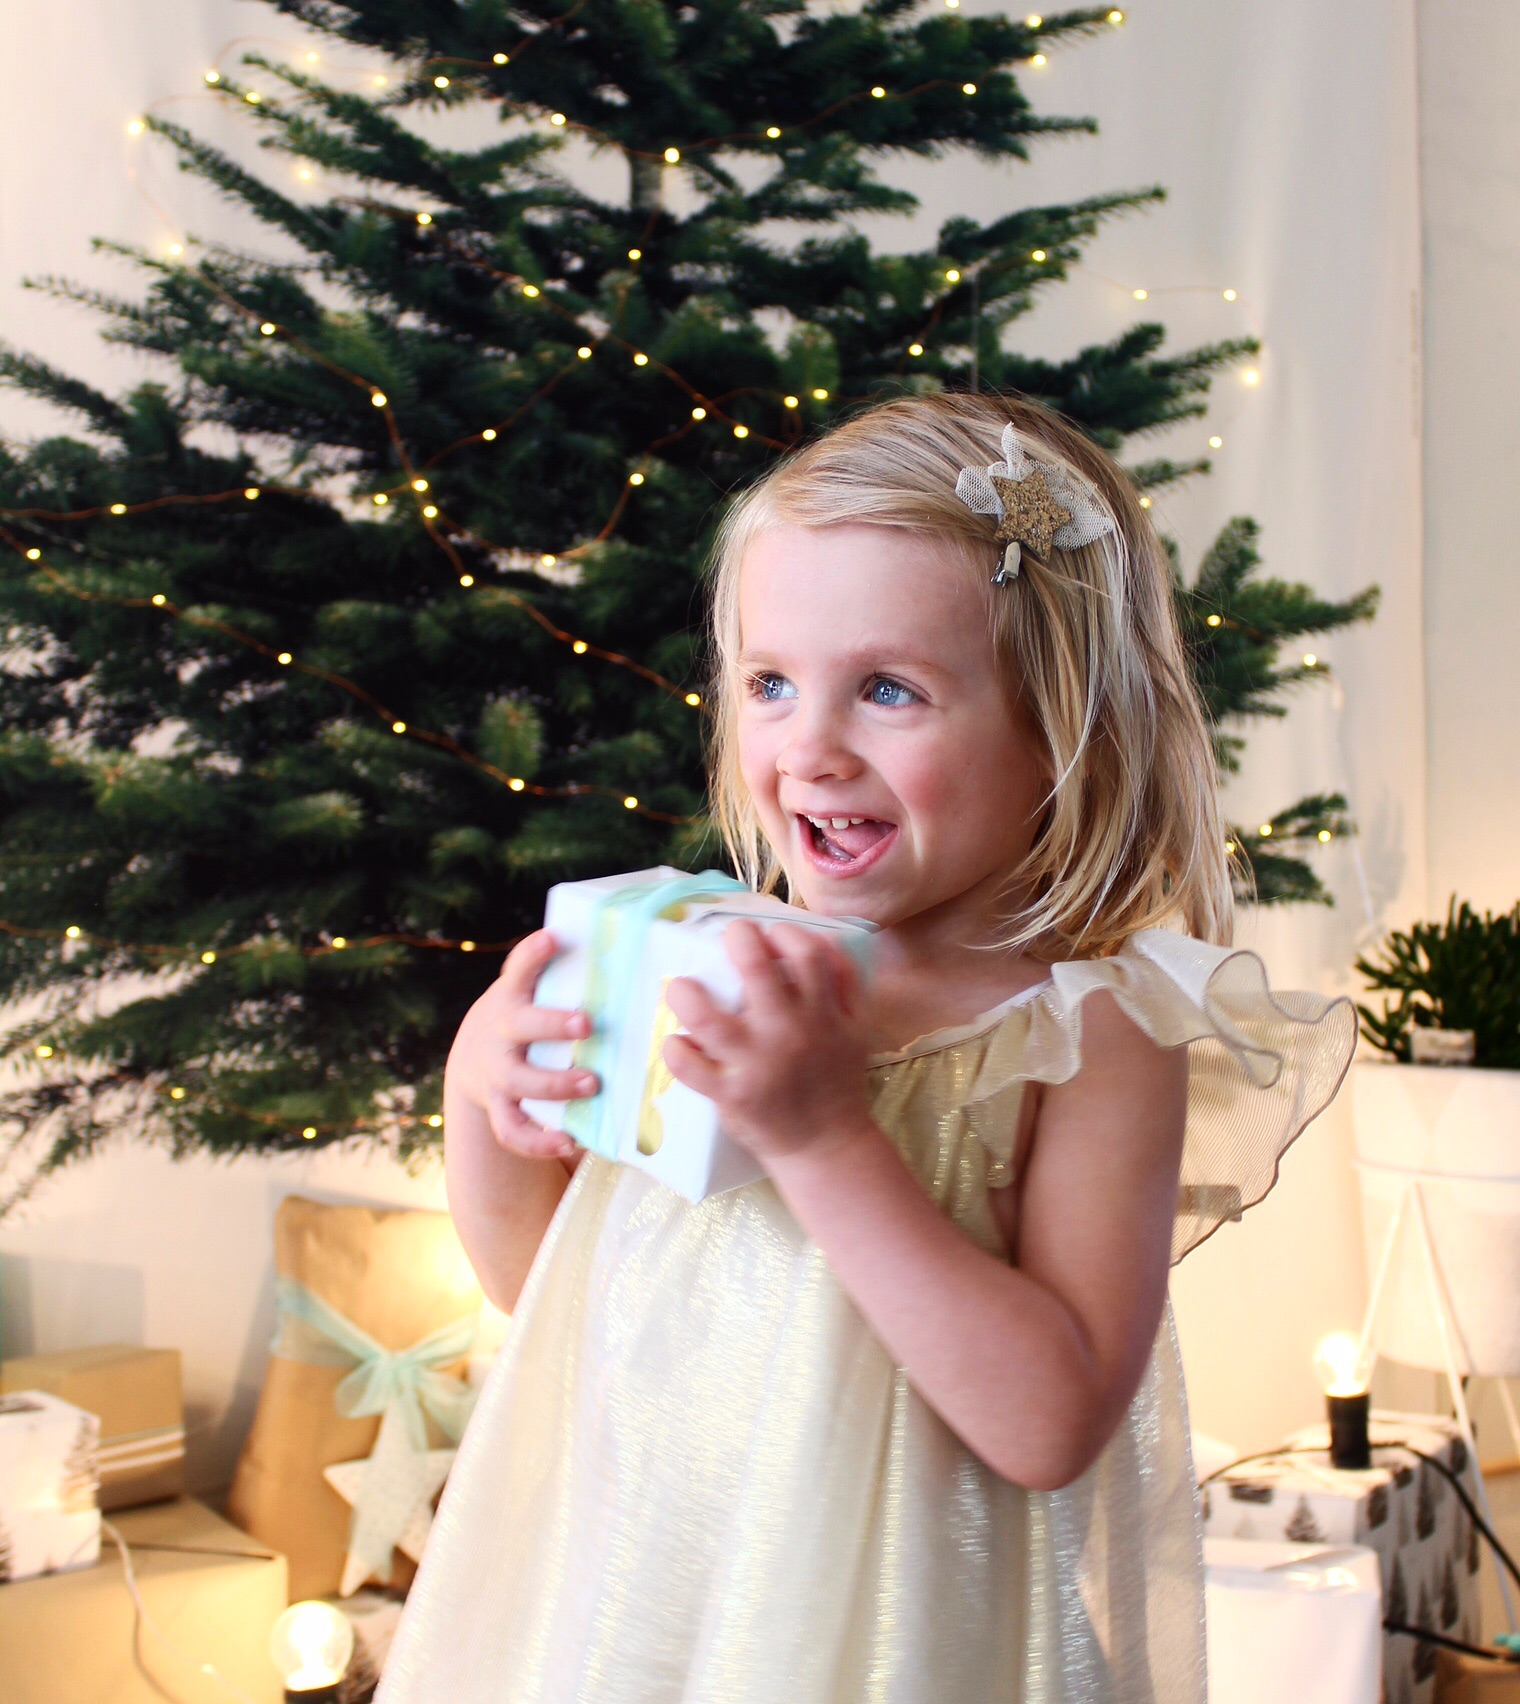 Indi in her beautiful christmas dress by eye story | fashion for toddlers we love | on the blog www.fourcheekymonkeys.com